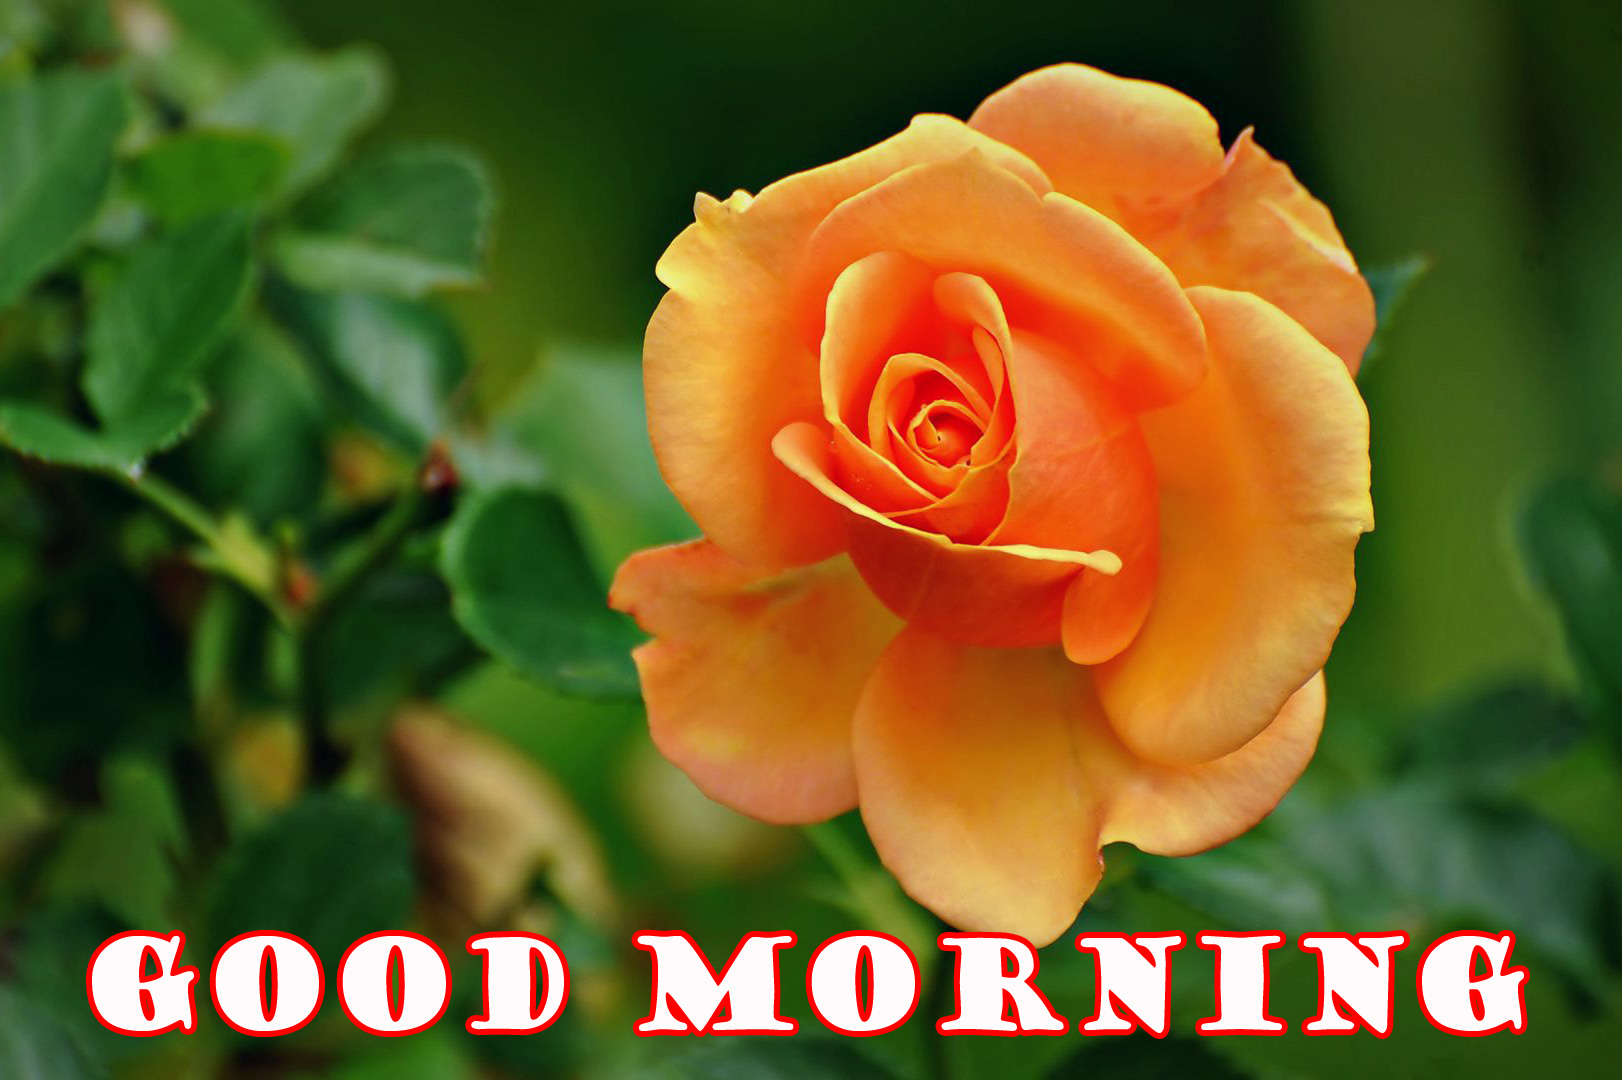 Good Morning Flowers Wallpaper Pictures Images Free Download